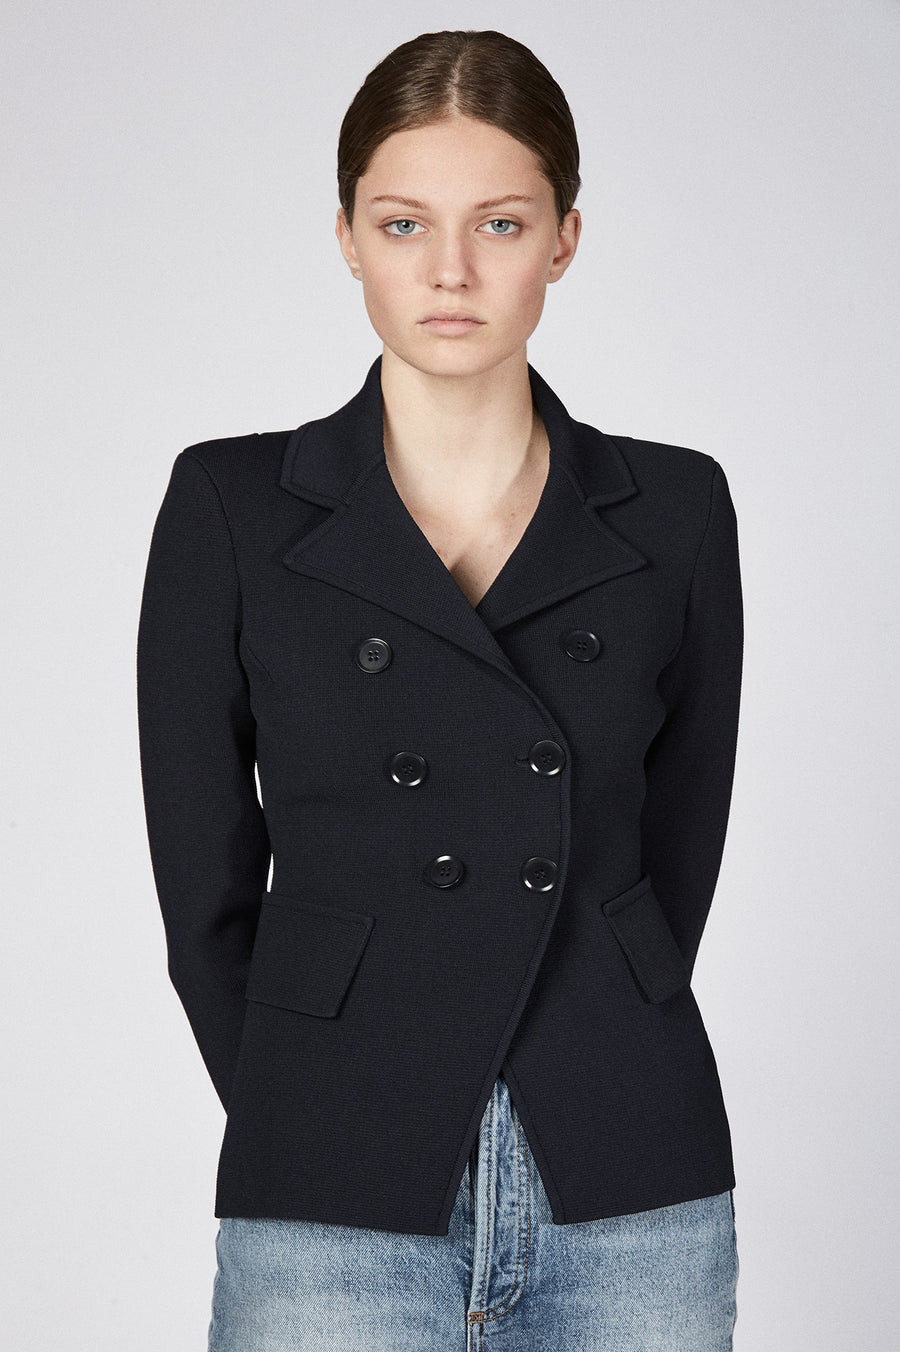 Expertly tailored in Italy for an ultra-flattering slim fit, this jacket holds its shape while flattering yours